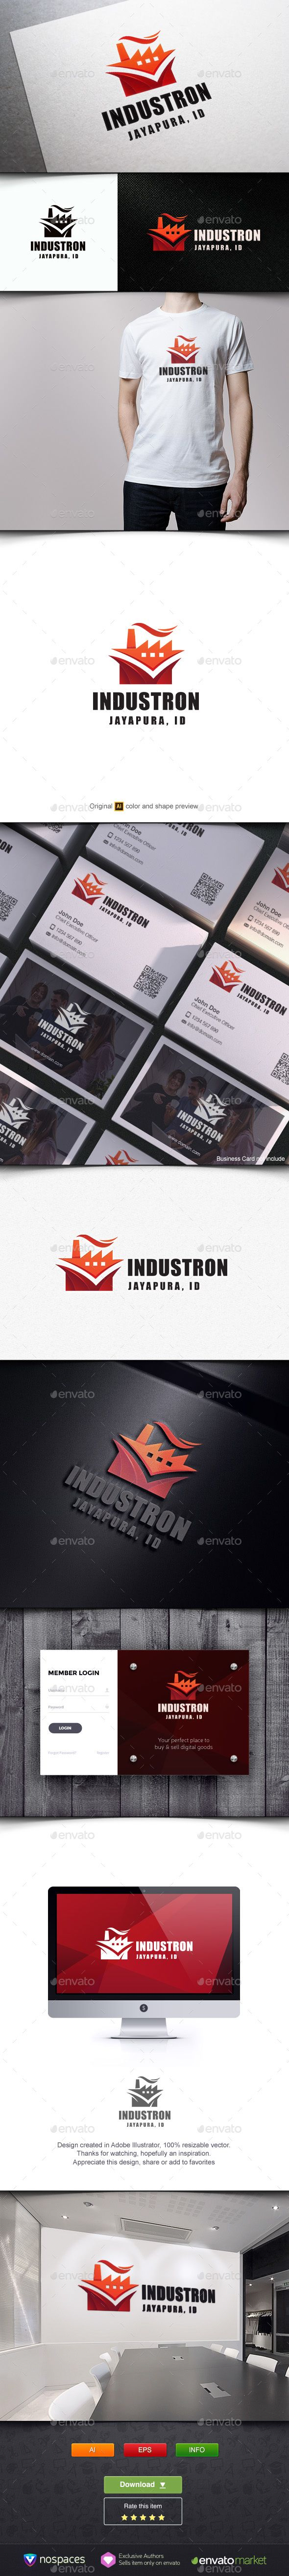 Industron by nospaces Awesome Logo Design Template, you can use this logo for any business. Feature:100 Vector Print Ready, CMYK Editable Colors and T